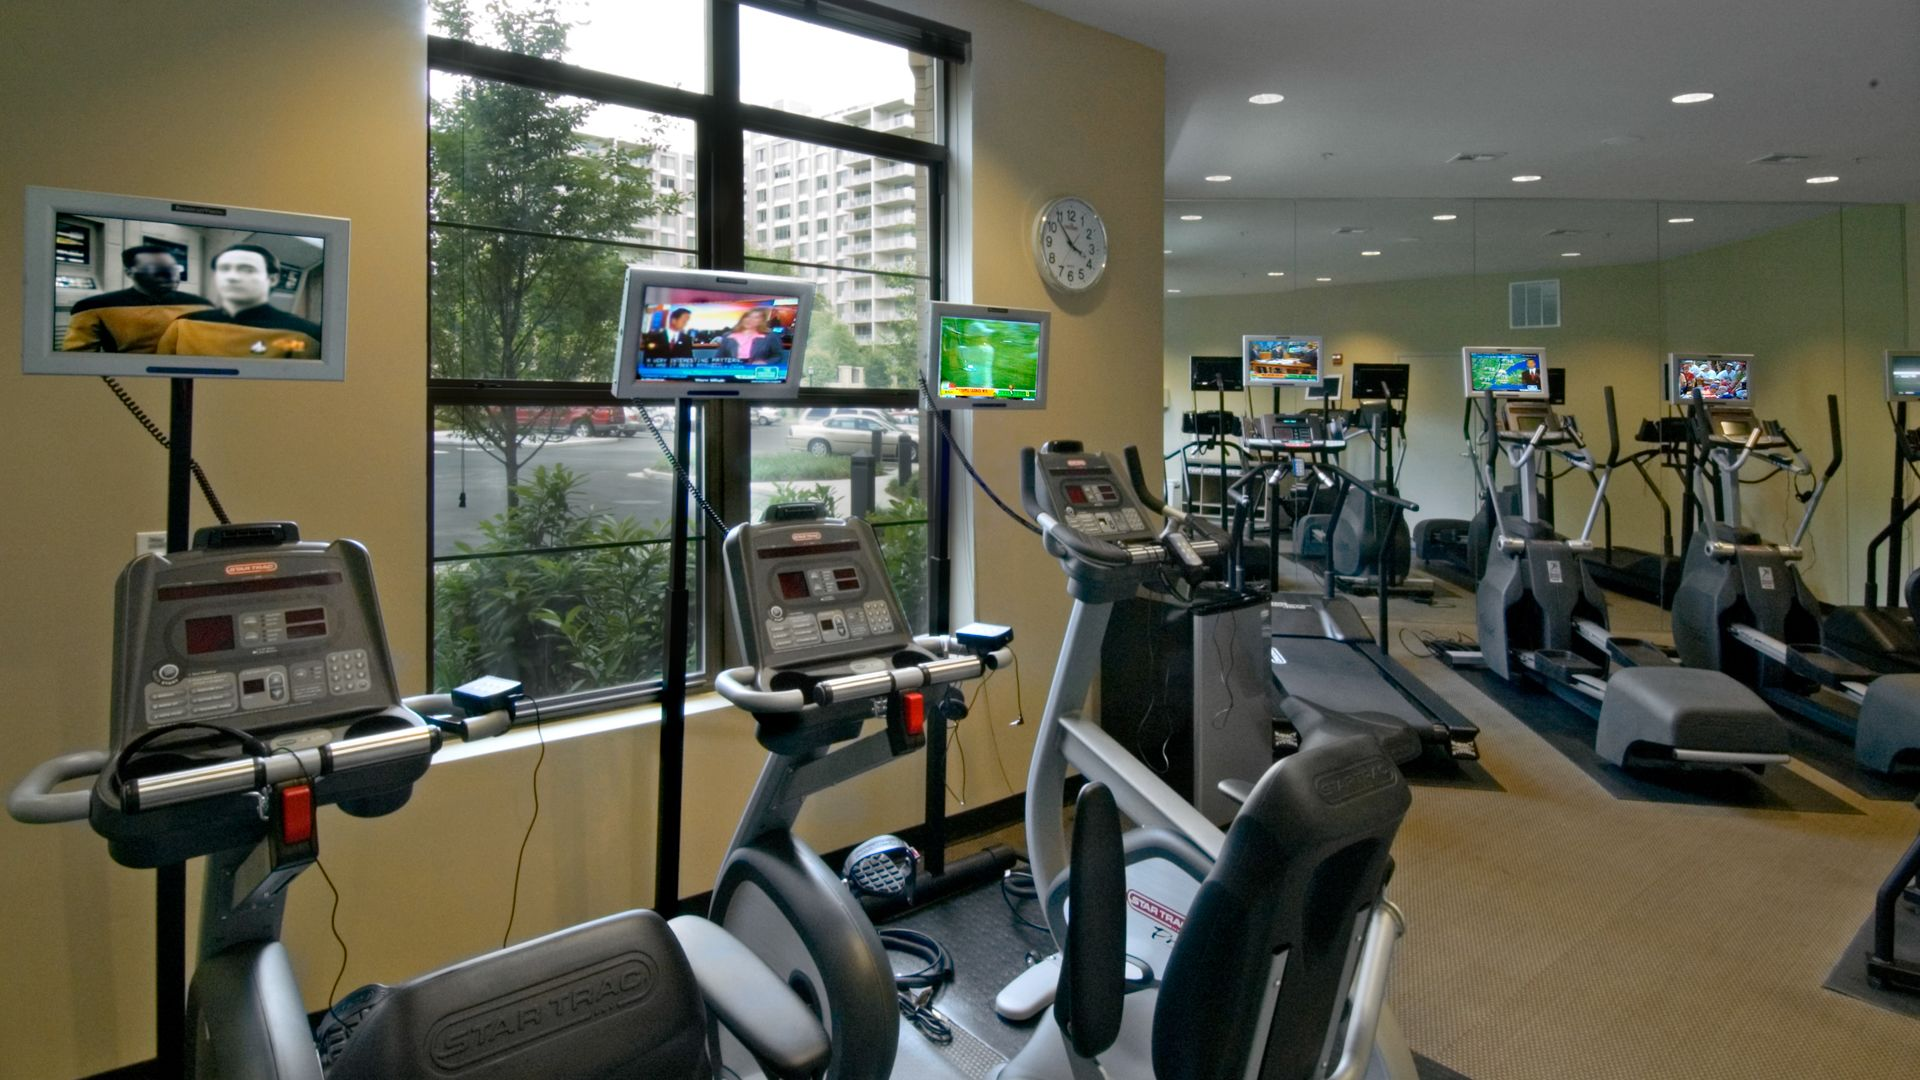 Lofts 590 Apartments Fitness Center